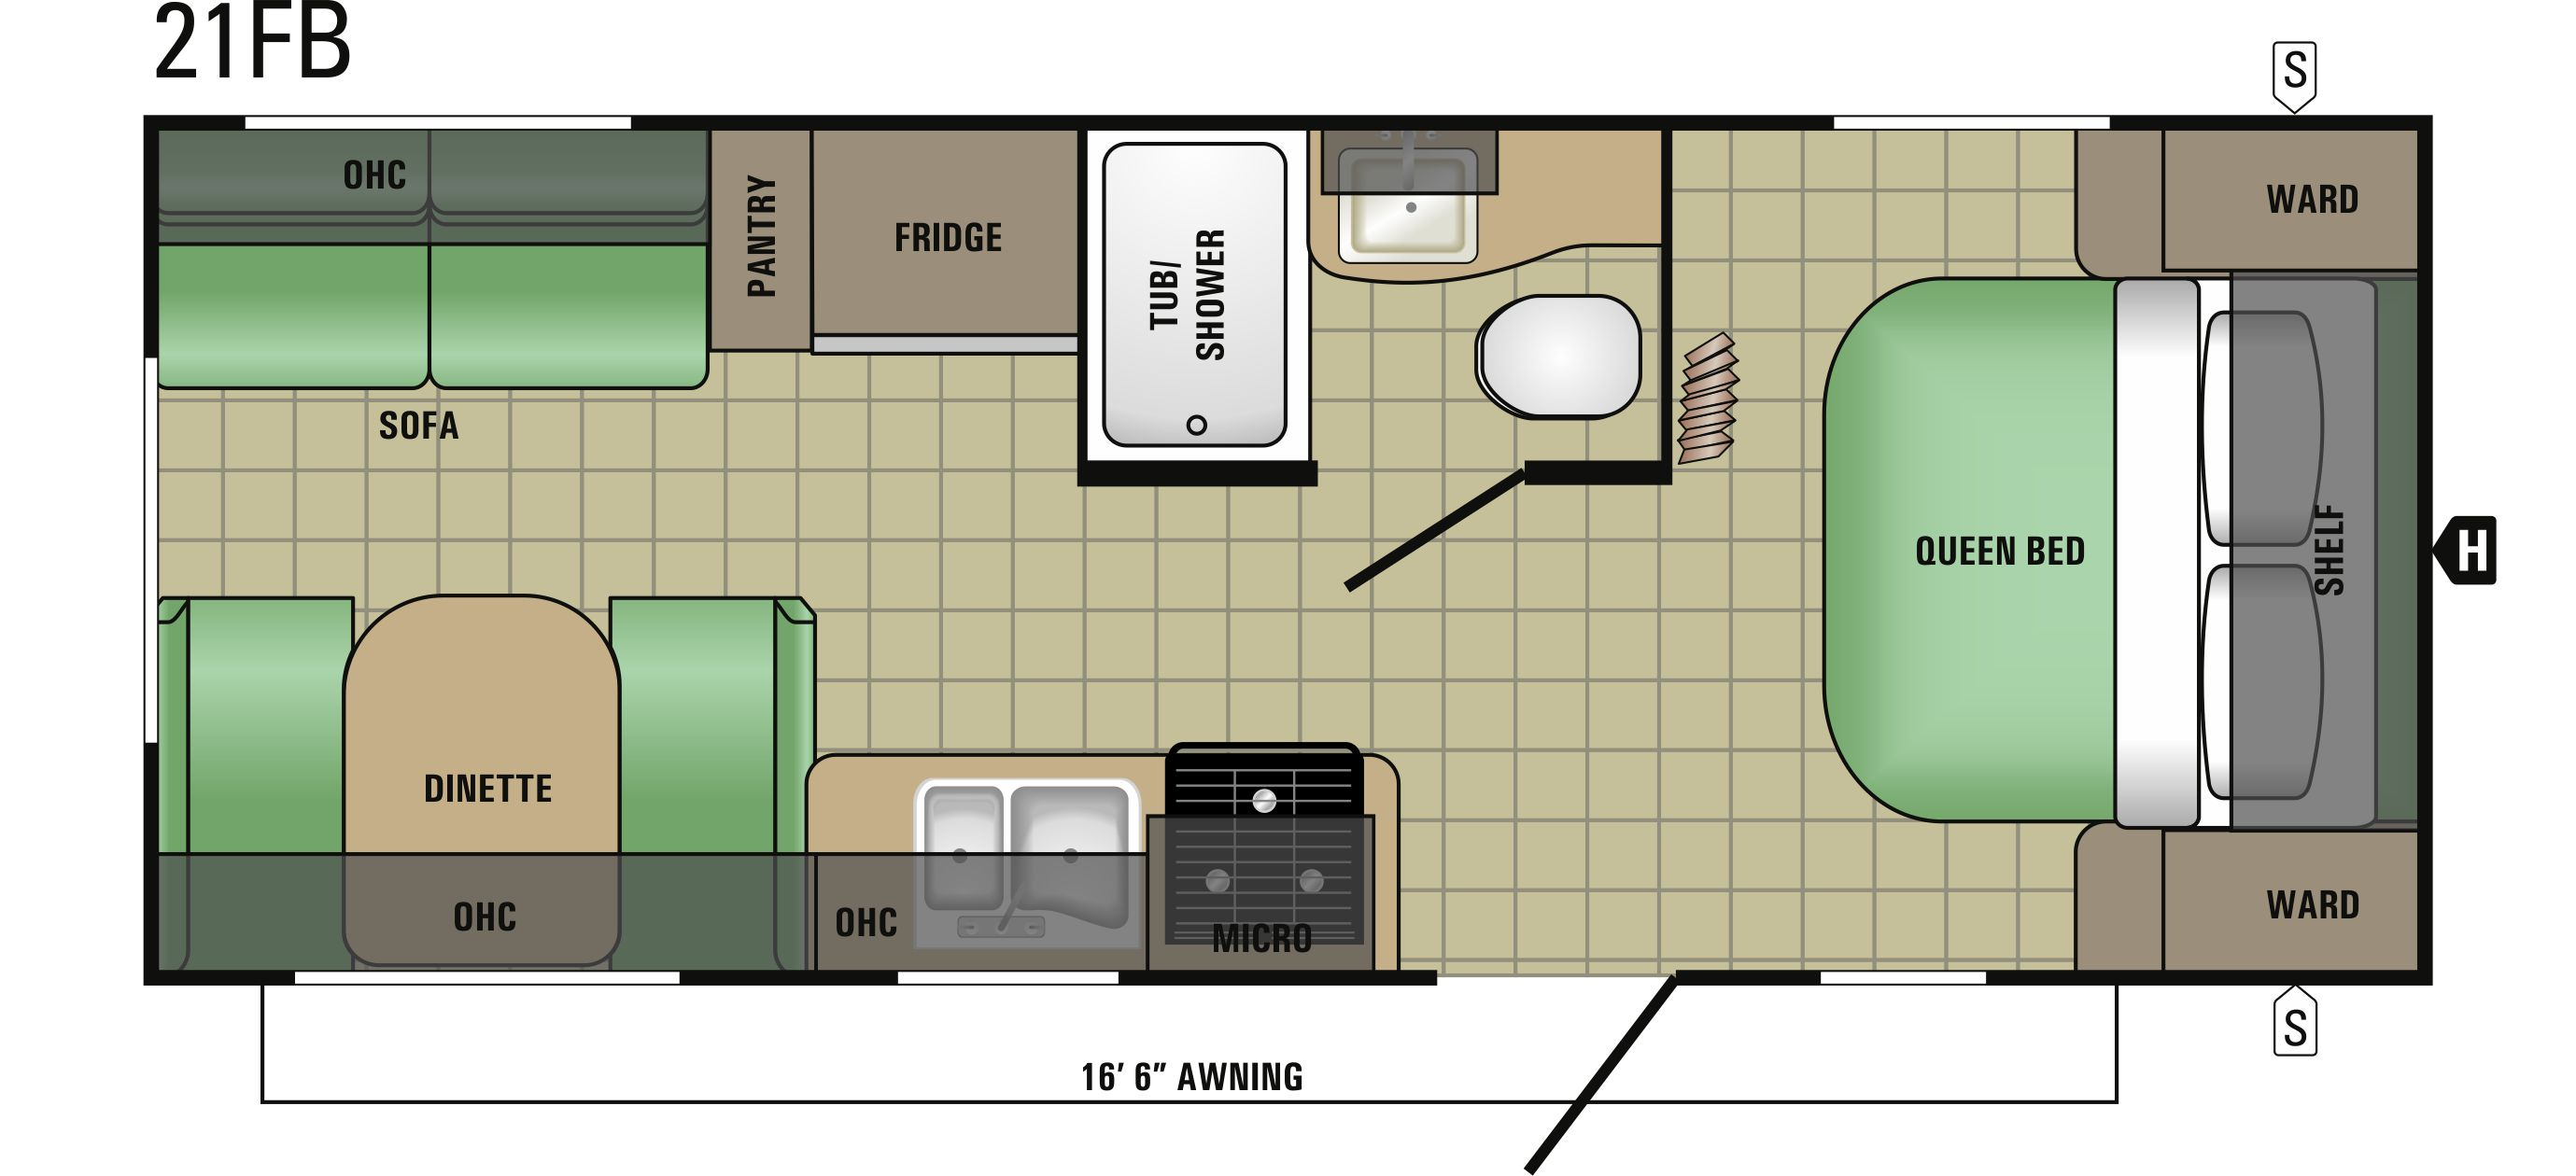 21FB Floorplan